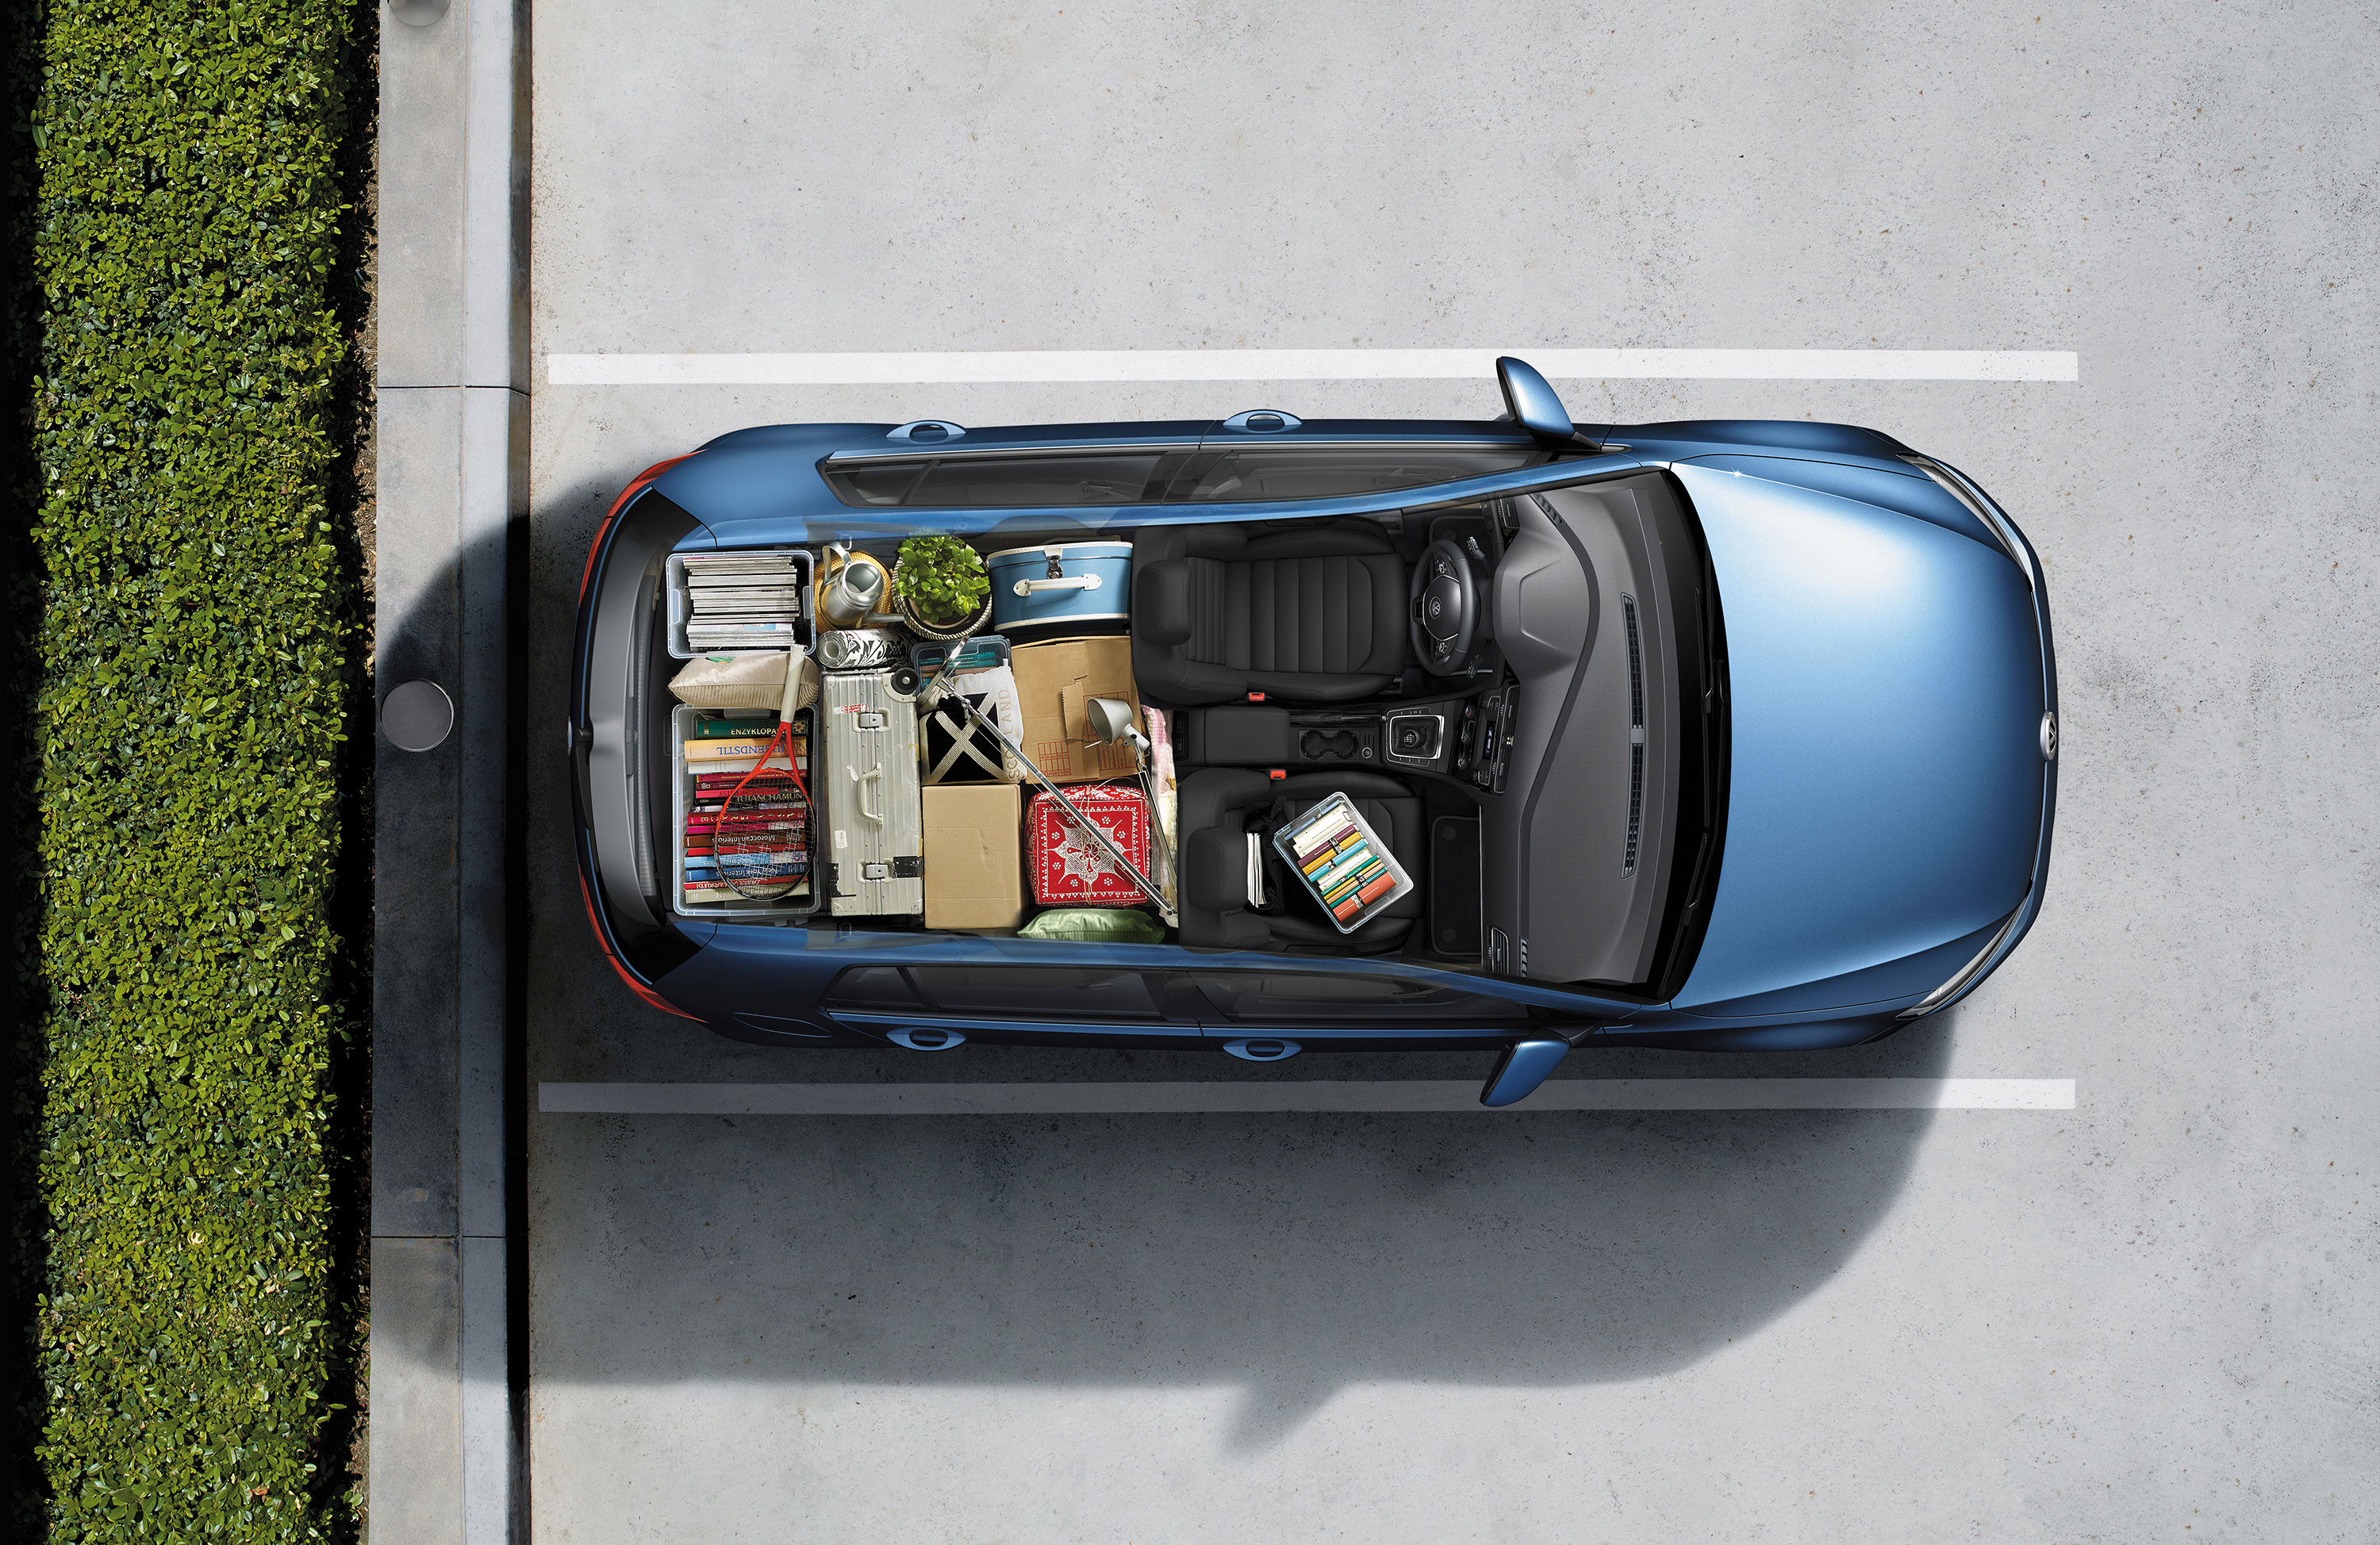 6 cars the Volkswagen Golf has more cargo space than